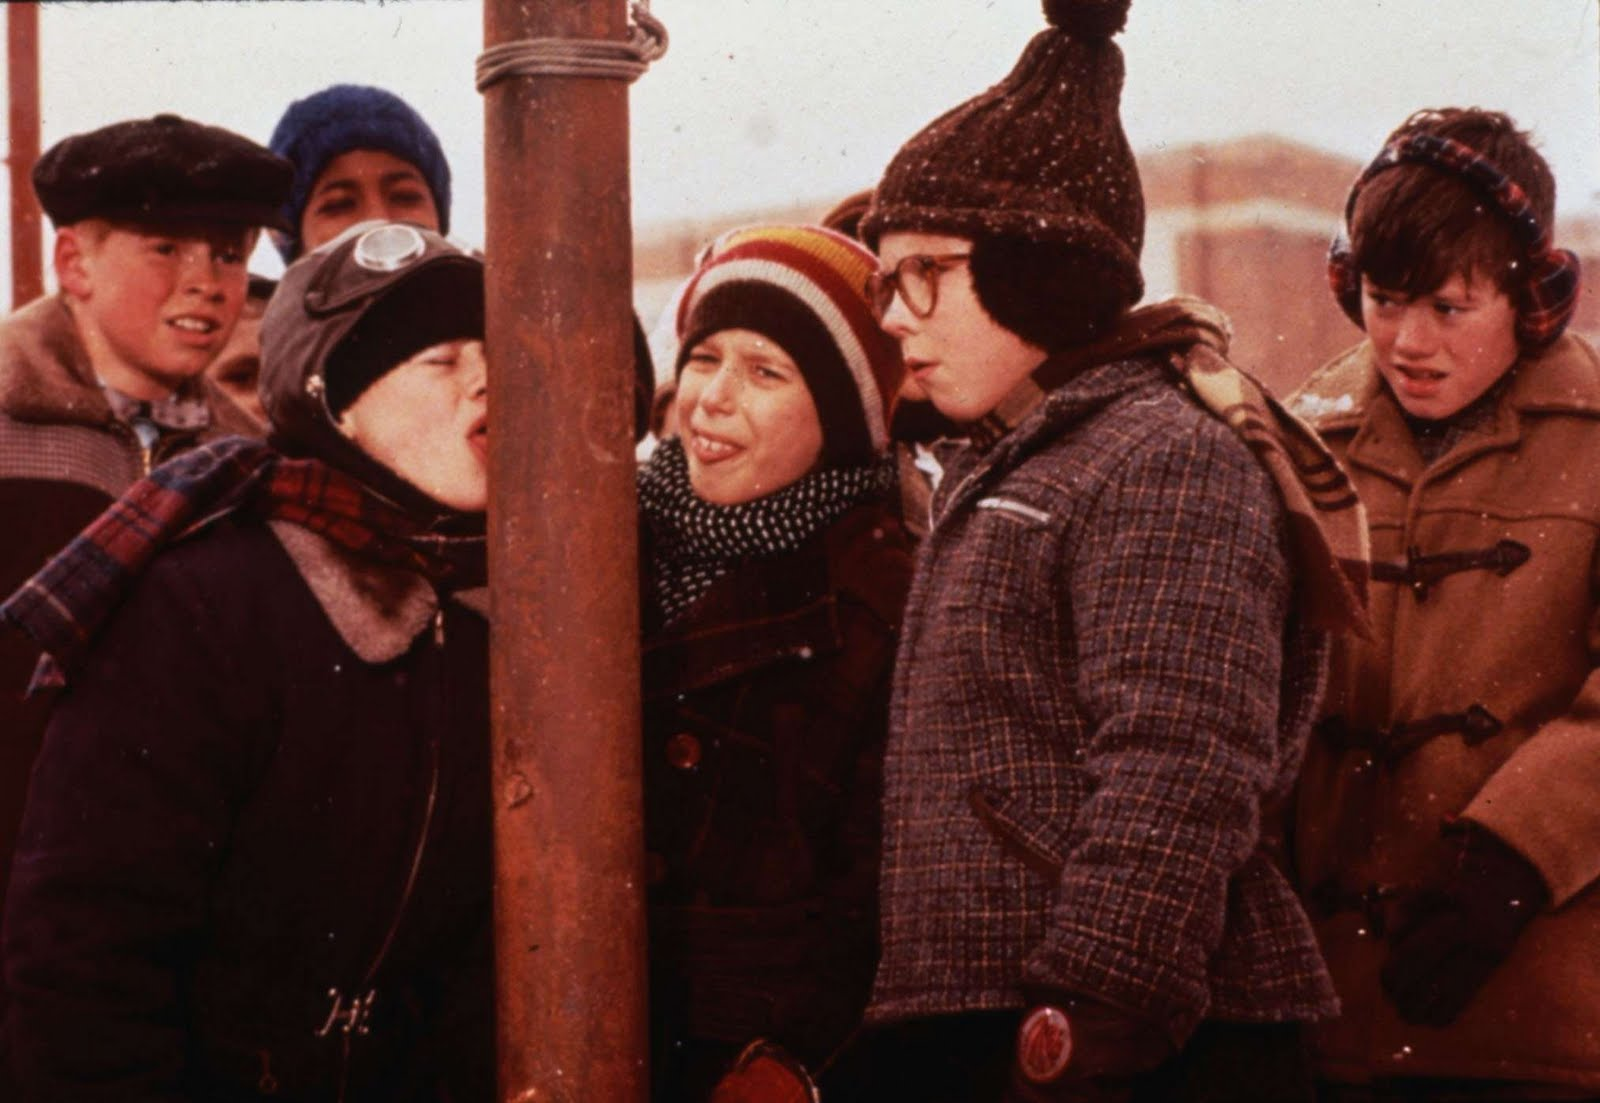 This American Wife: My All-Time Favorite Christmas Movies